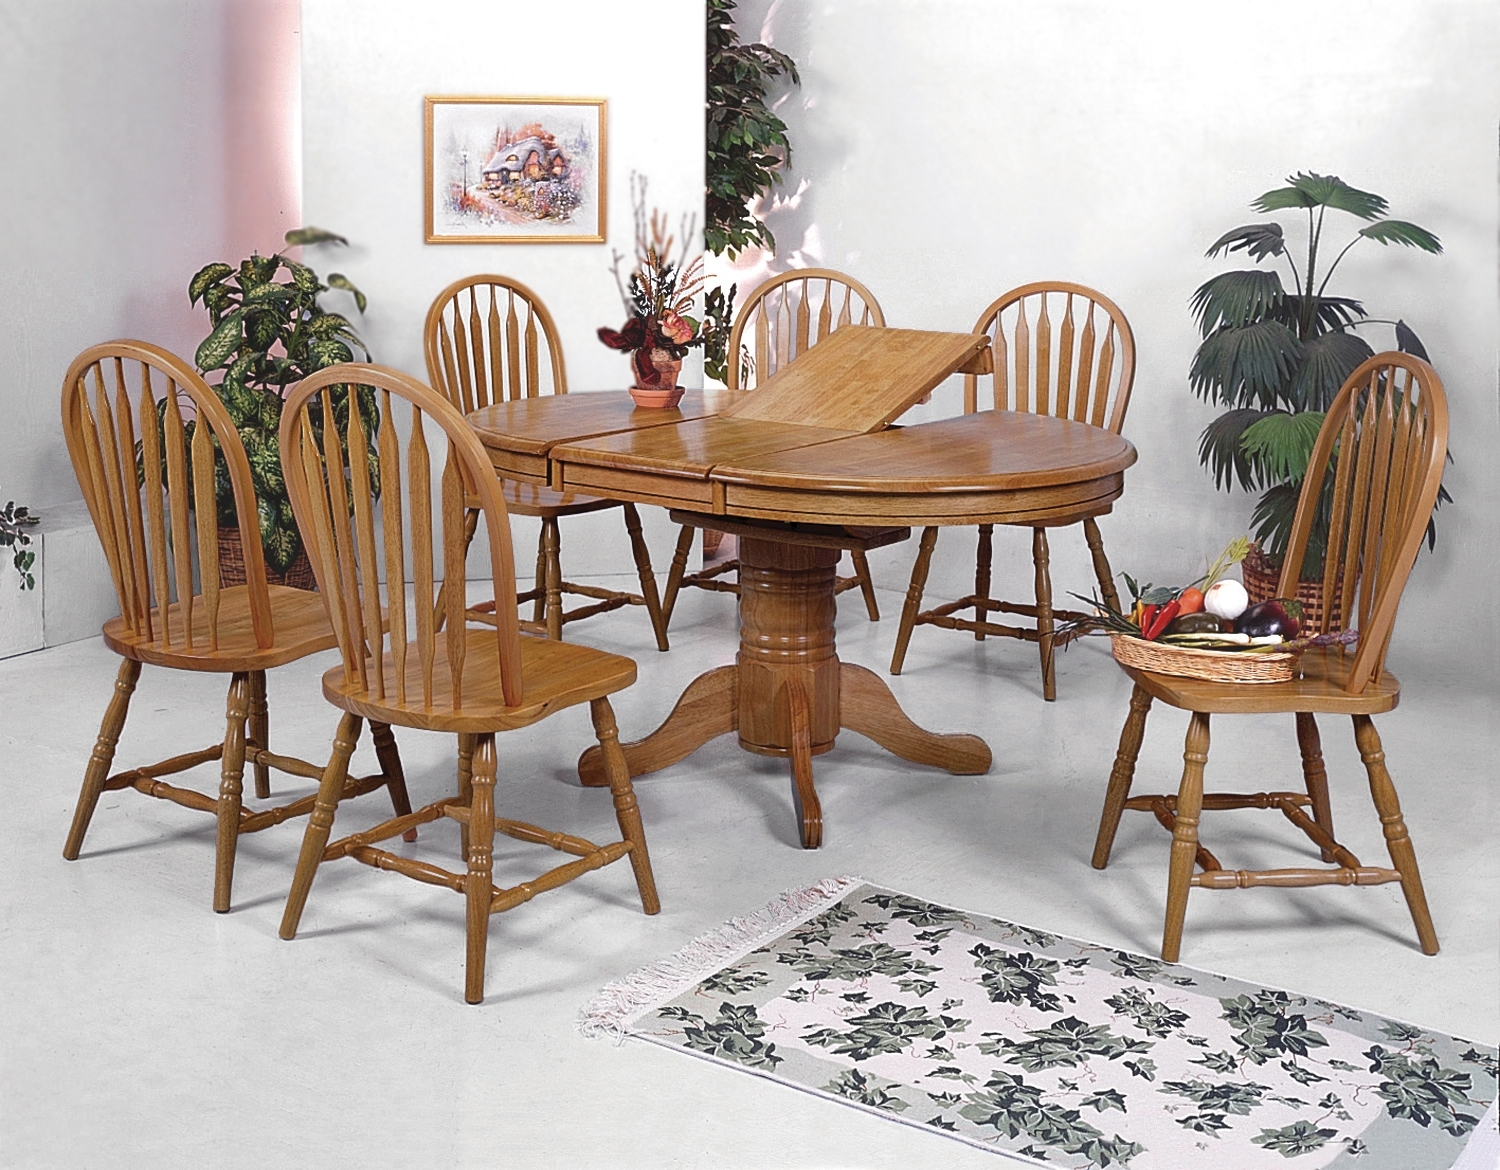 Oval Dining Tables For Sale Throughout Most Up To Date Solid Wood Oval Dining Table With 4 Chairs! – Dream Rooms Furniture (View 3 of 25)